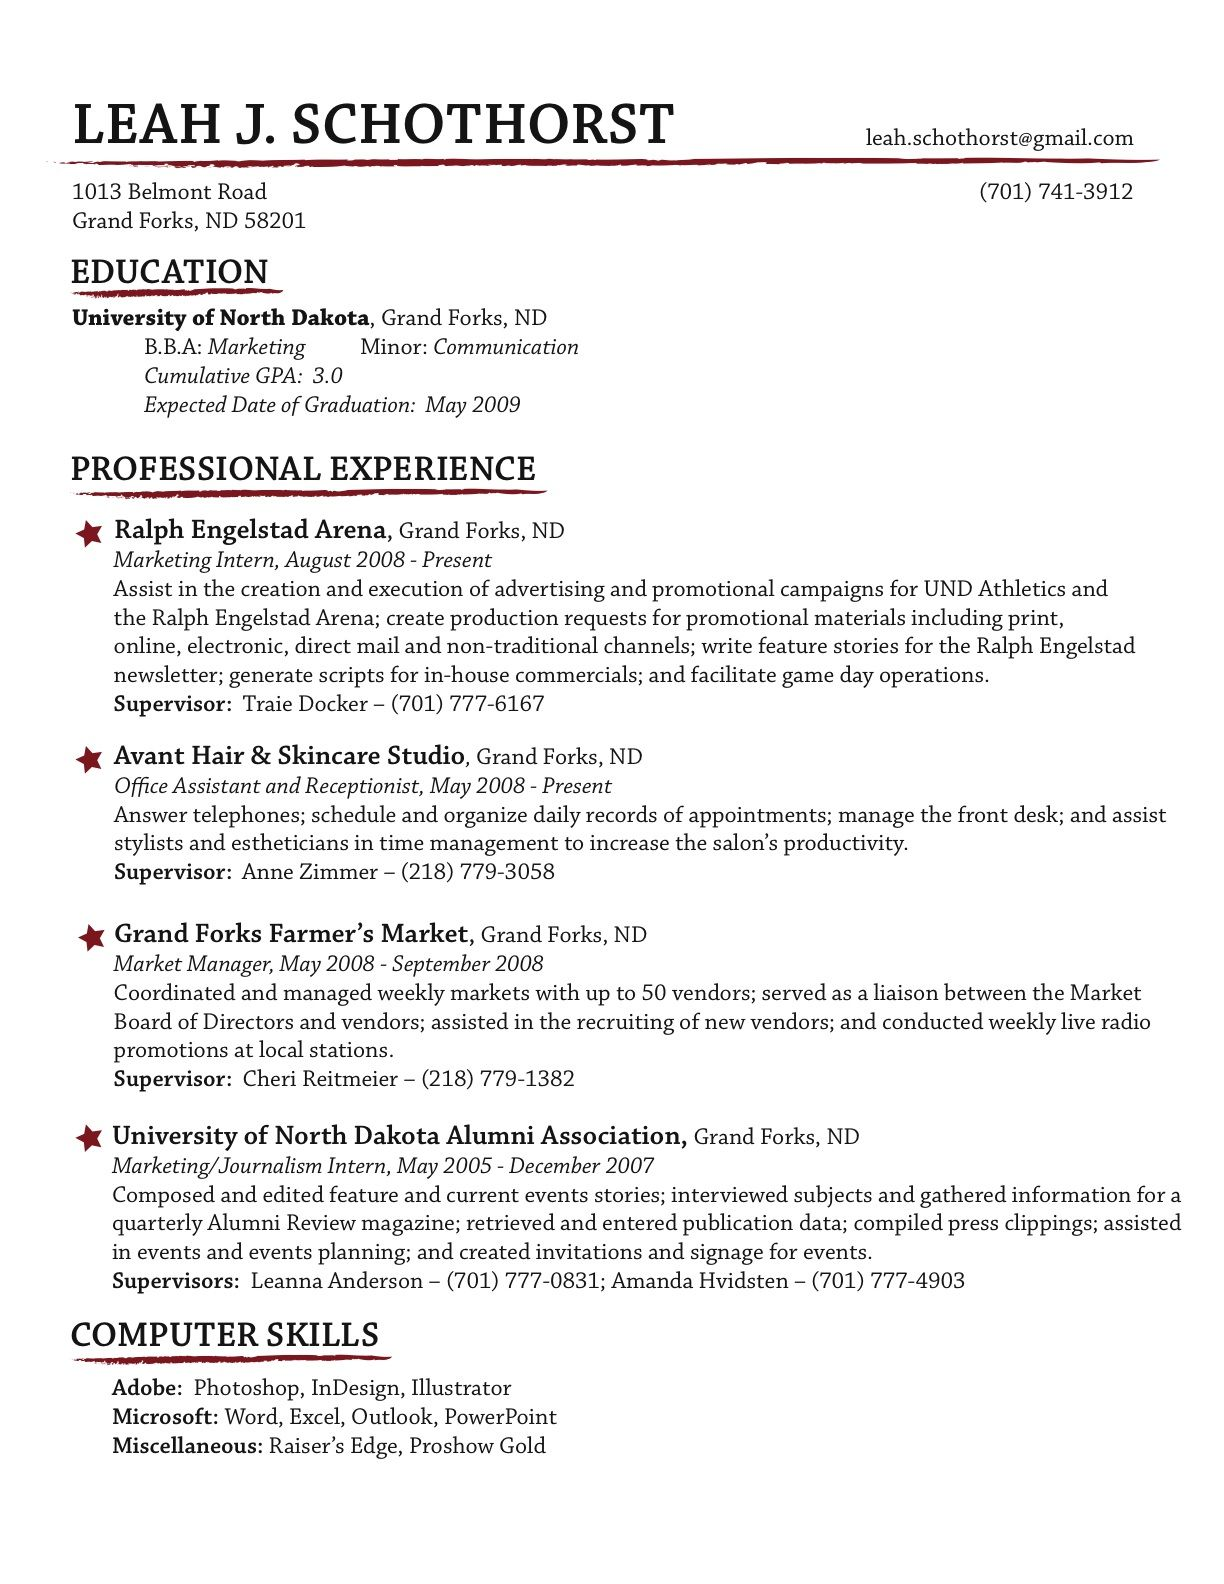 Business Systems Analyst Resume Sample Resume : Make A Resume Website Cover  Letter Or Resume Online .  Making A Professional Resume